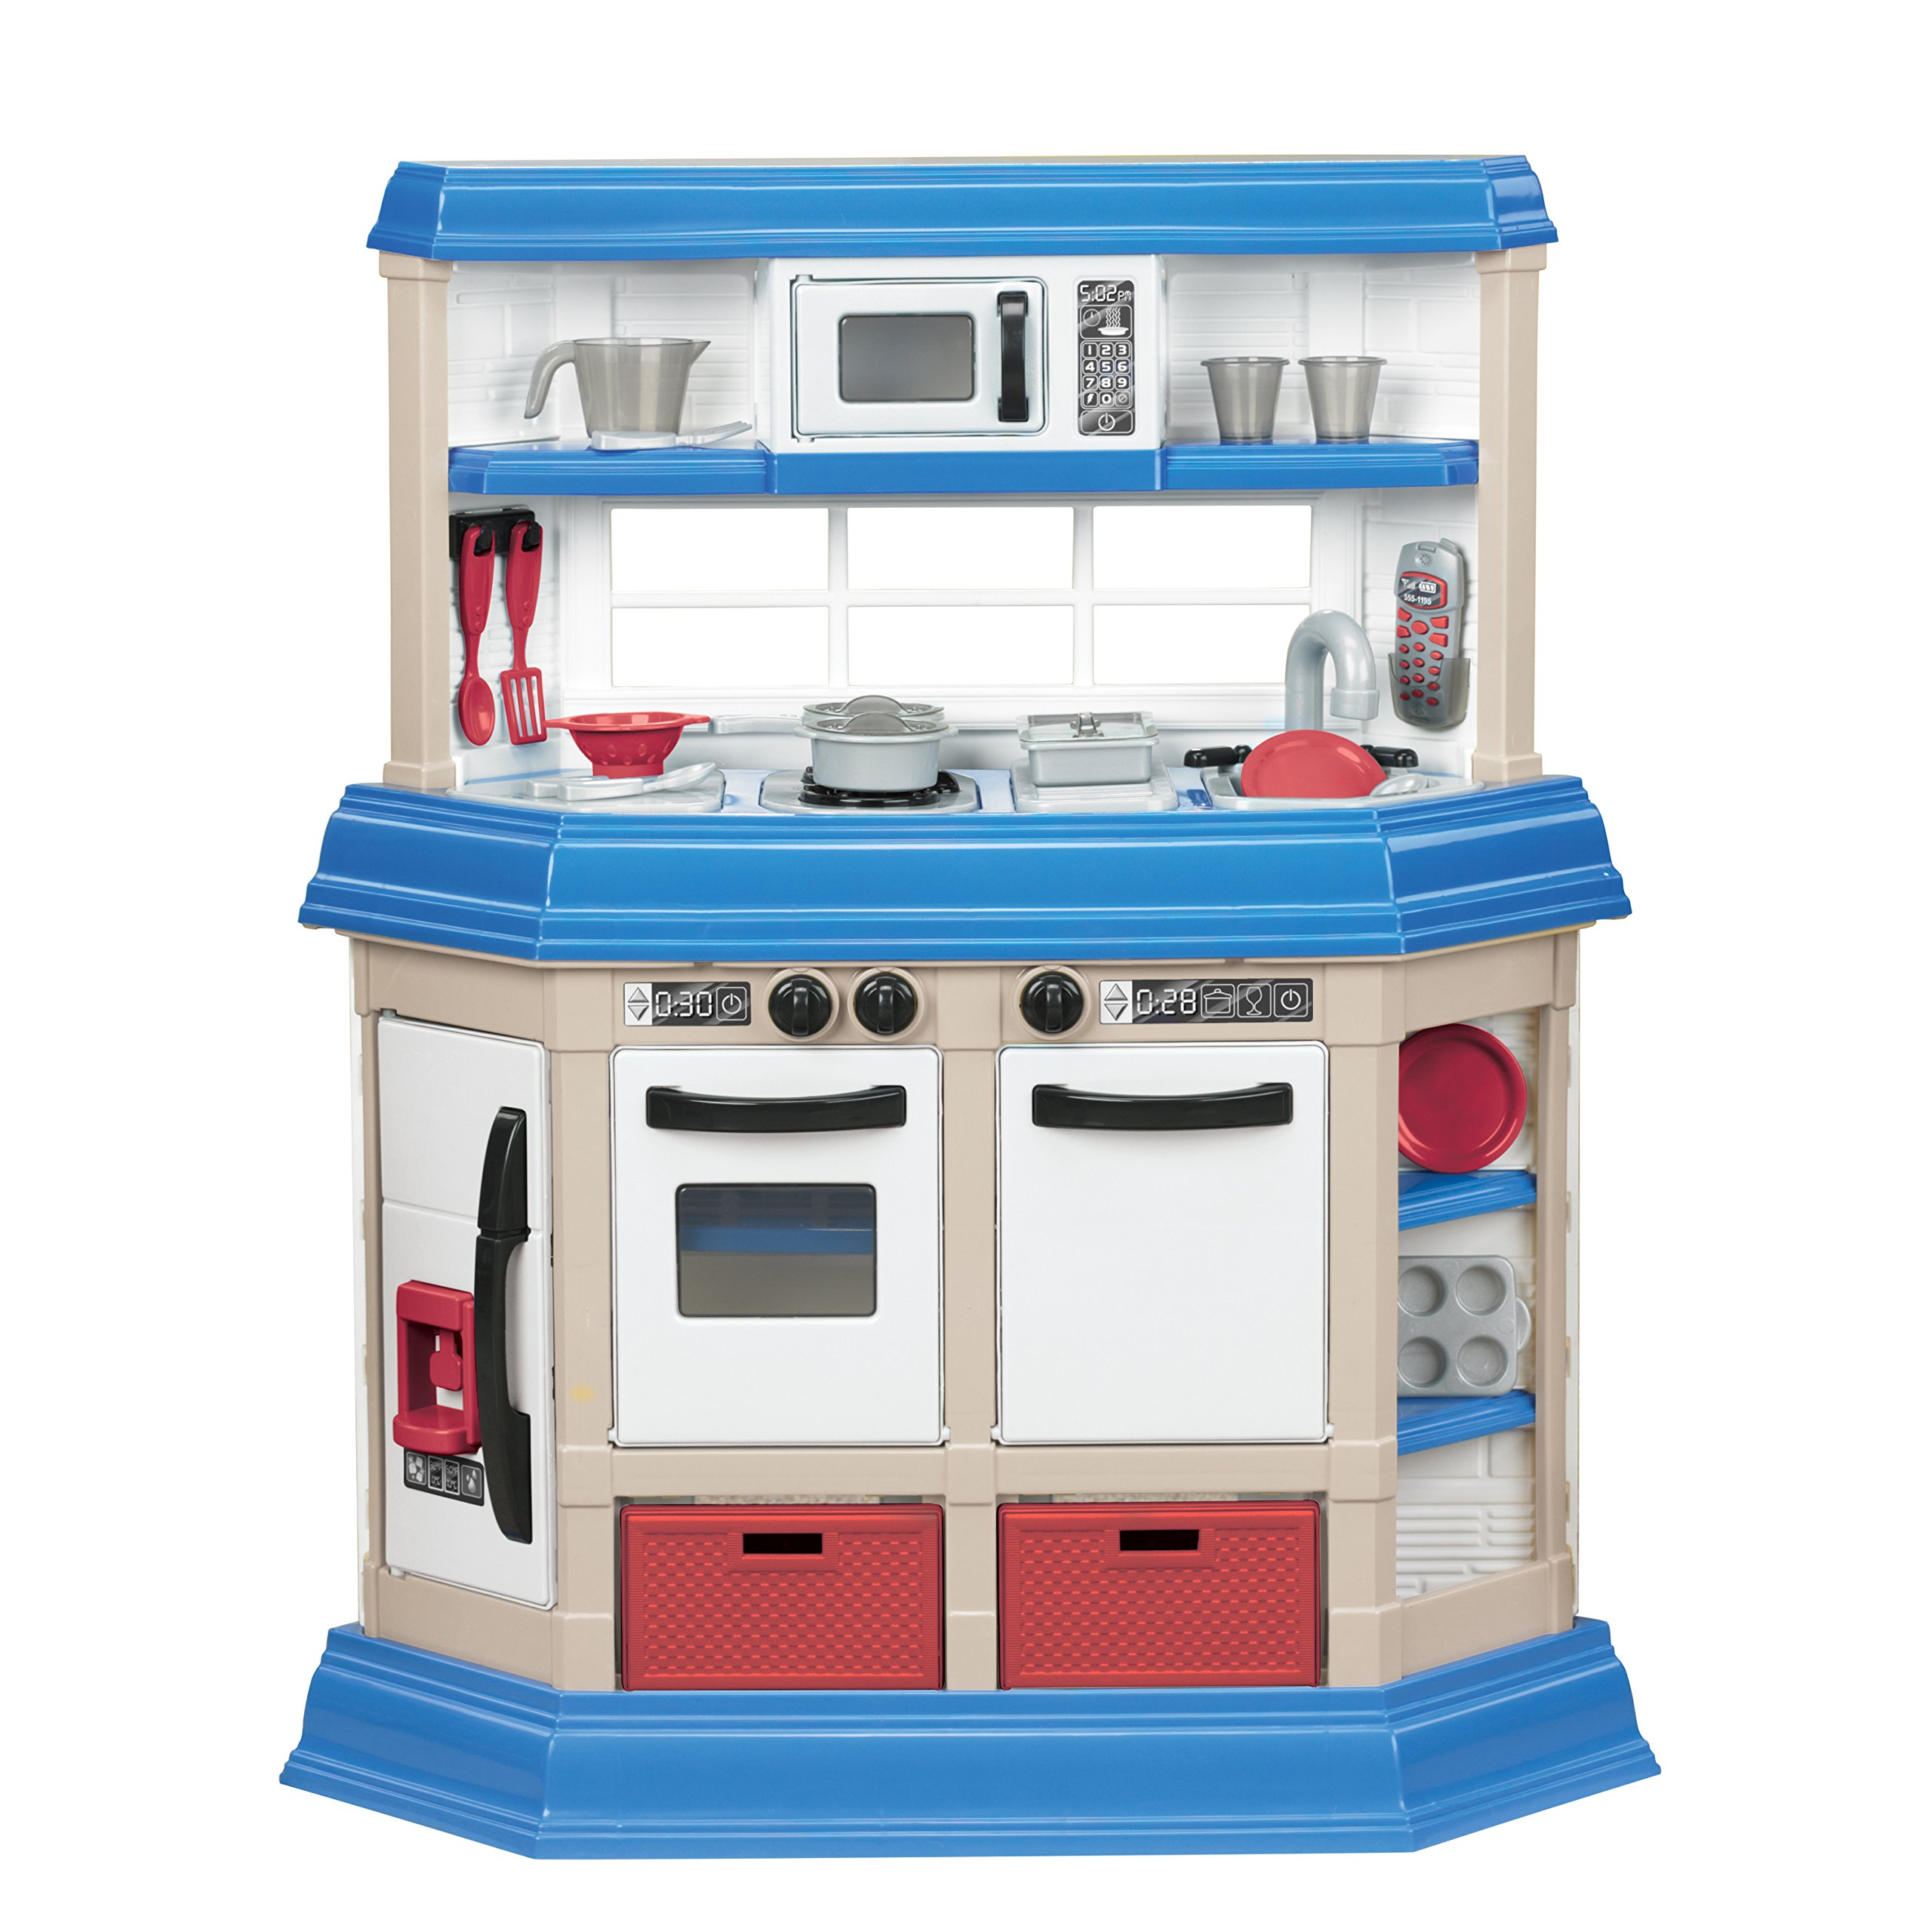 American Plastic Toys Cookin' Kitchen by American Plastic Toys